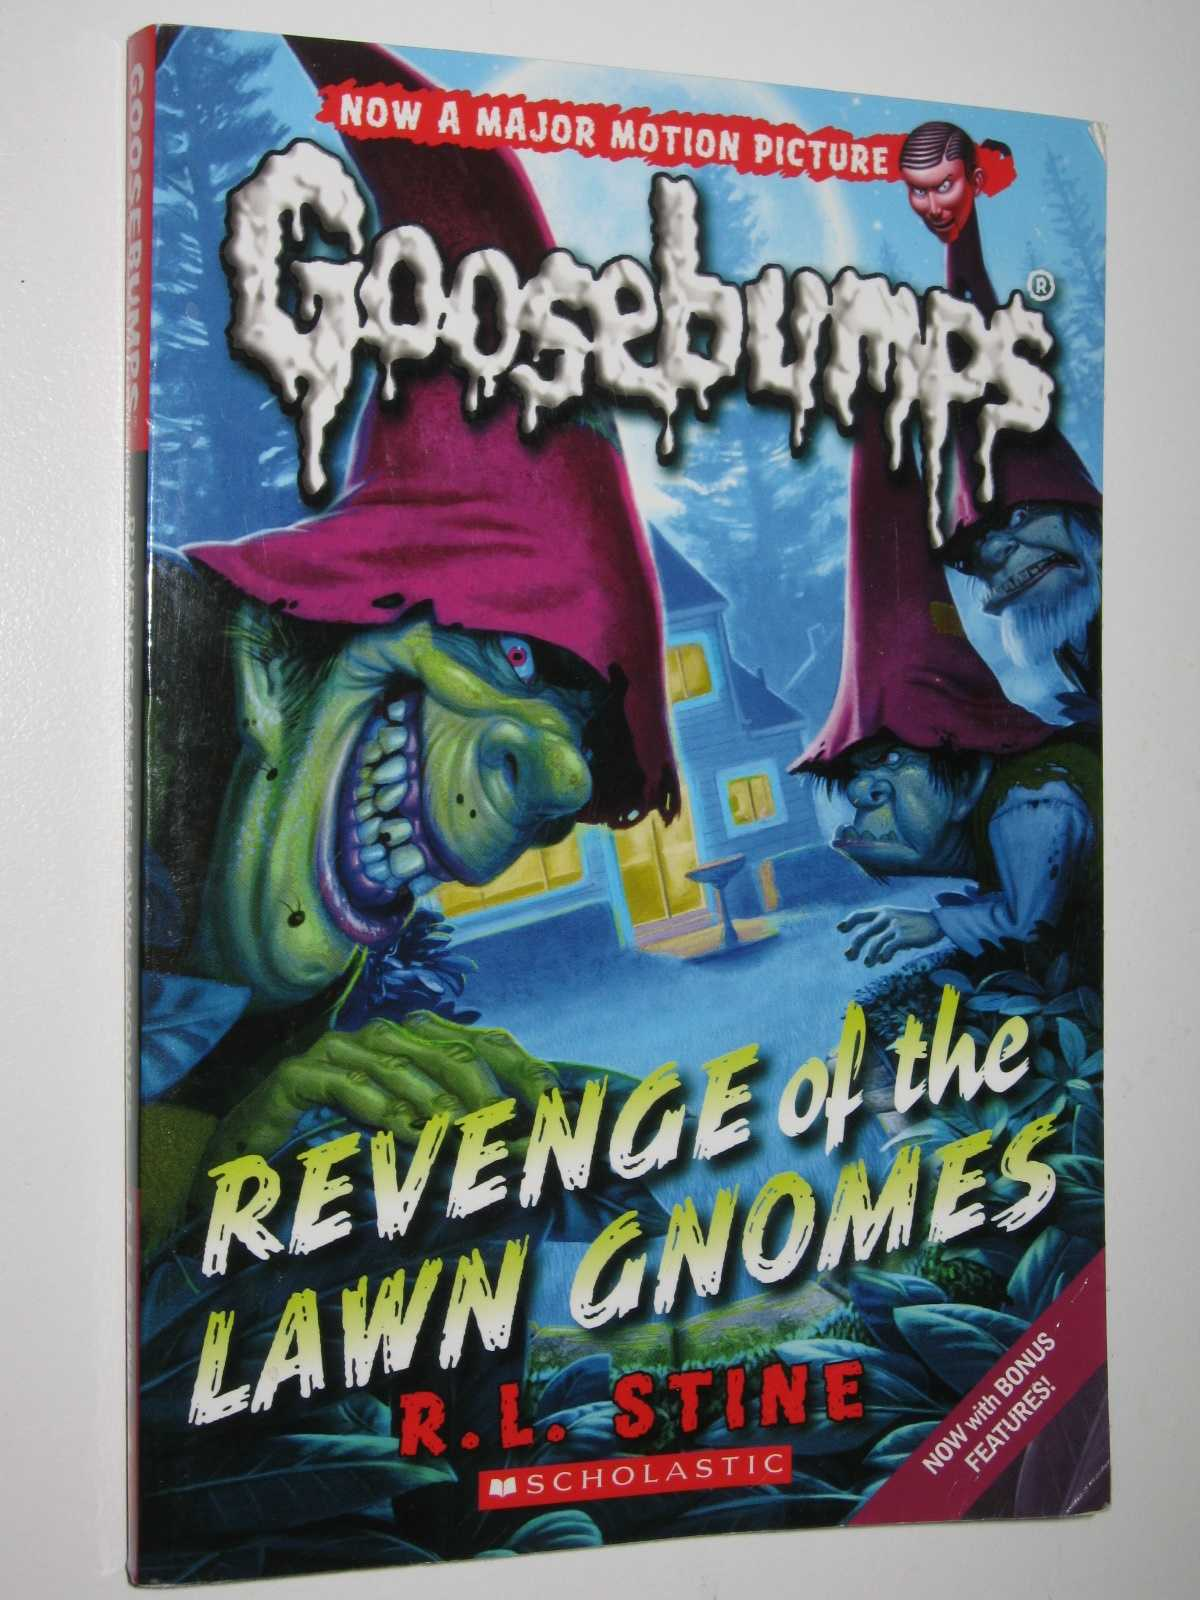 Image for Revenge of the Lawn Gnomes - Goosebumps Series #34